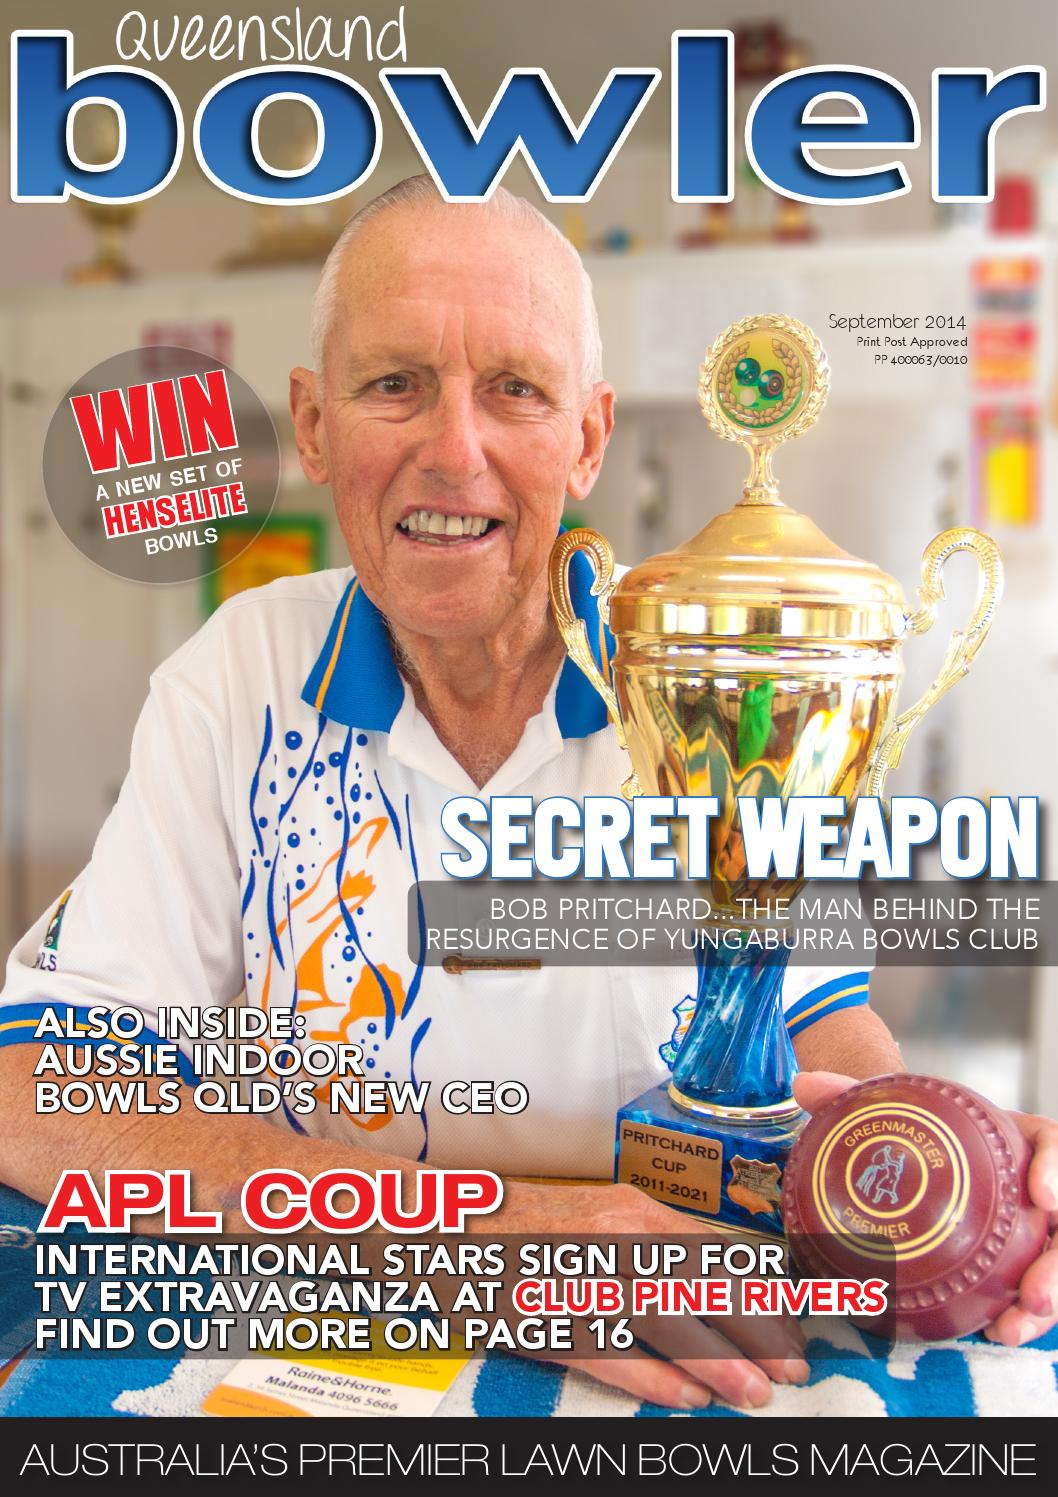 Bowls Qld September 2014 By Queensland Bowler Issuu